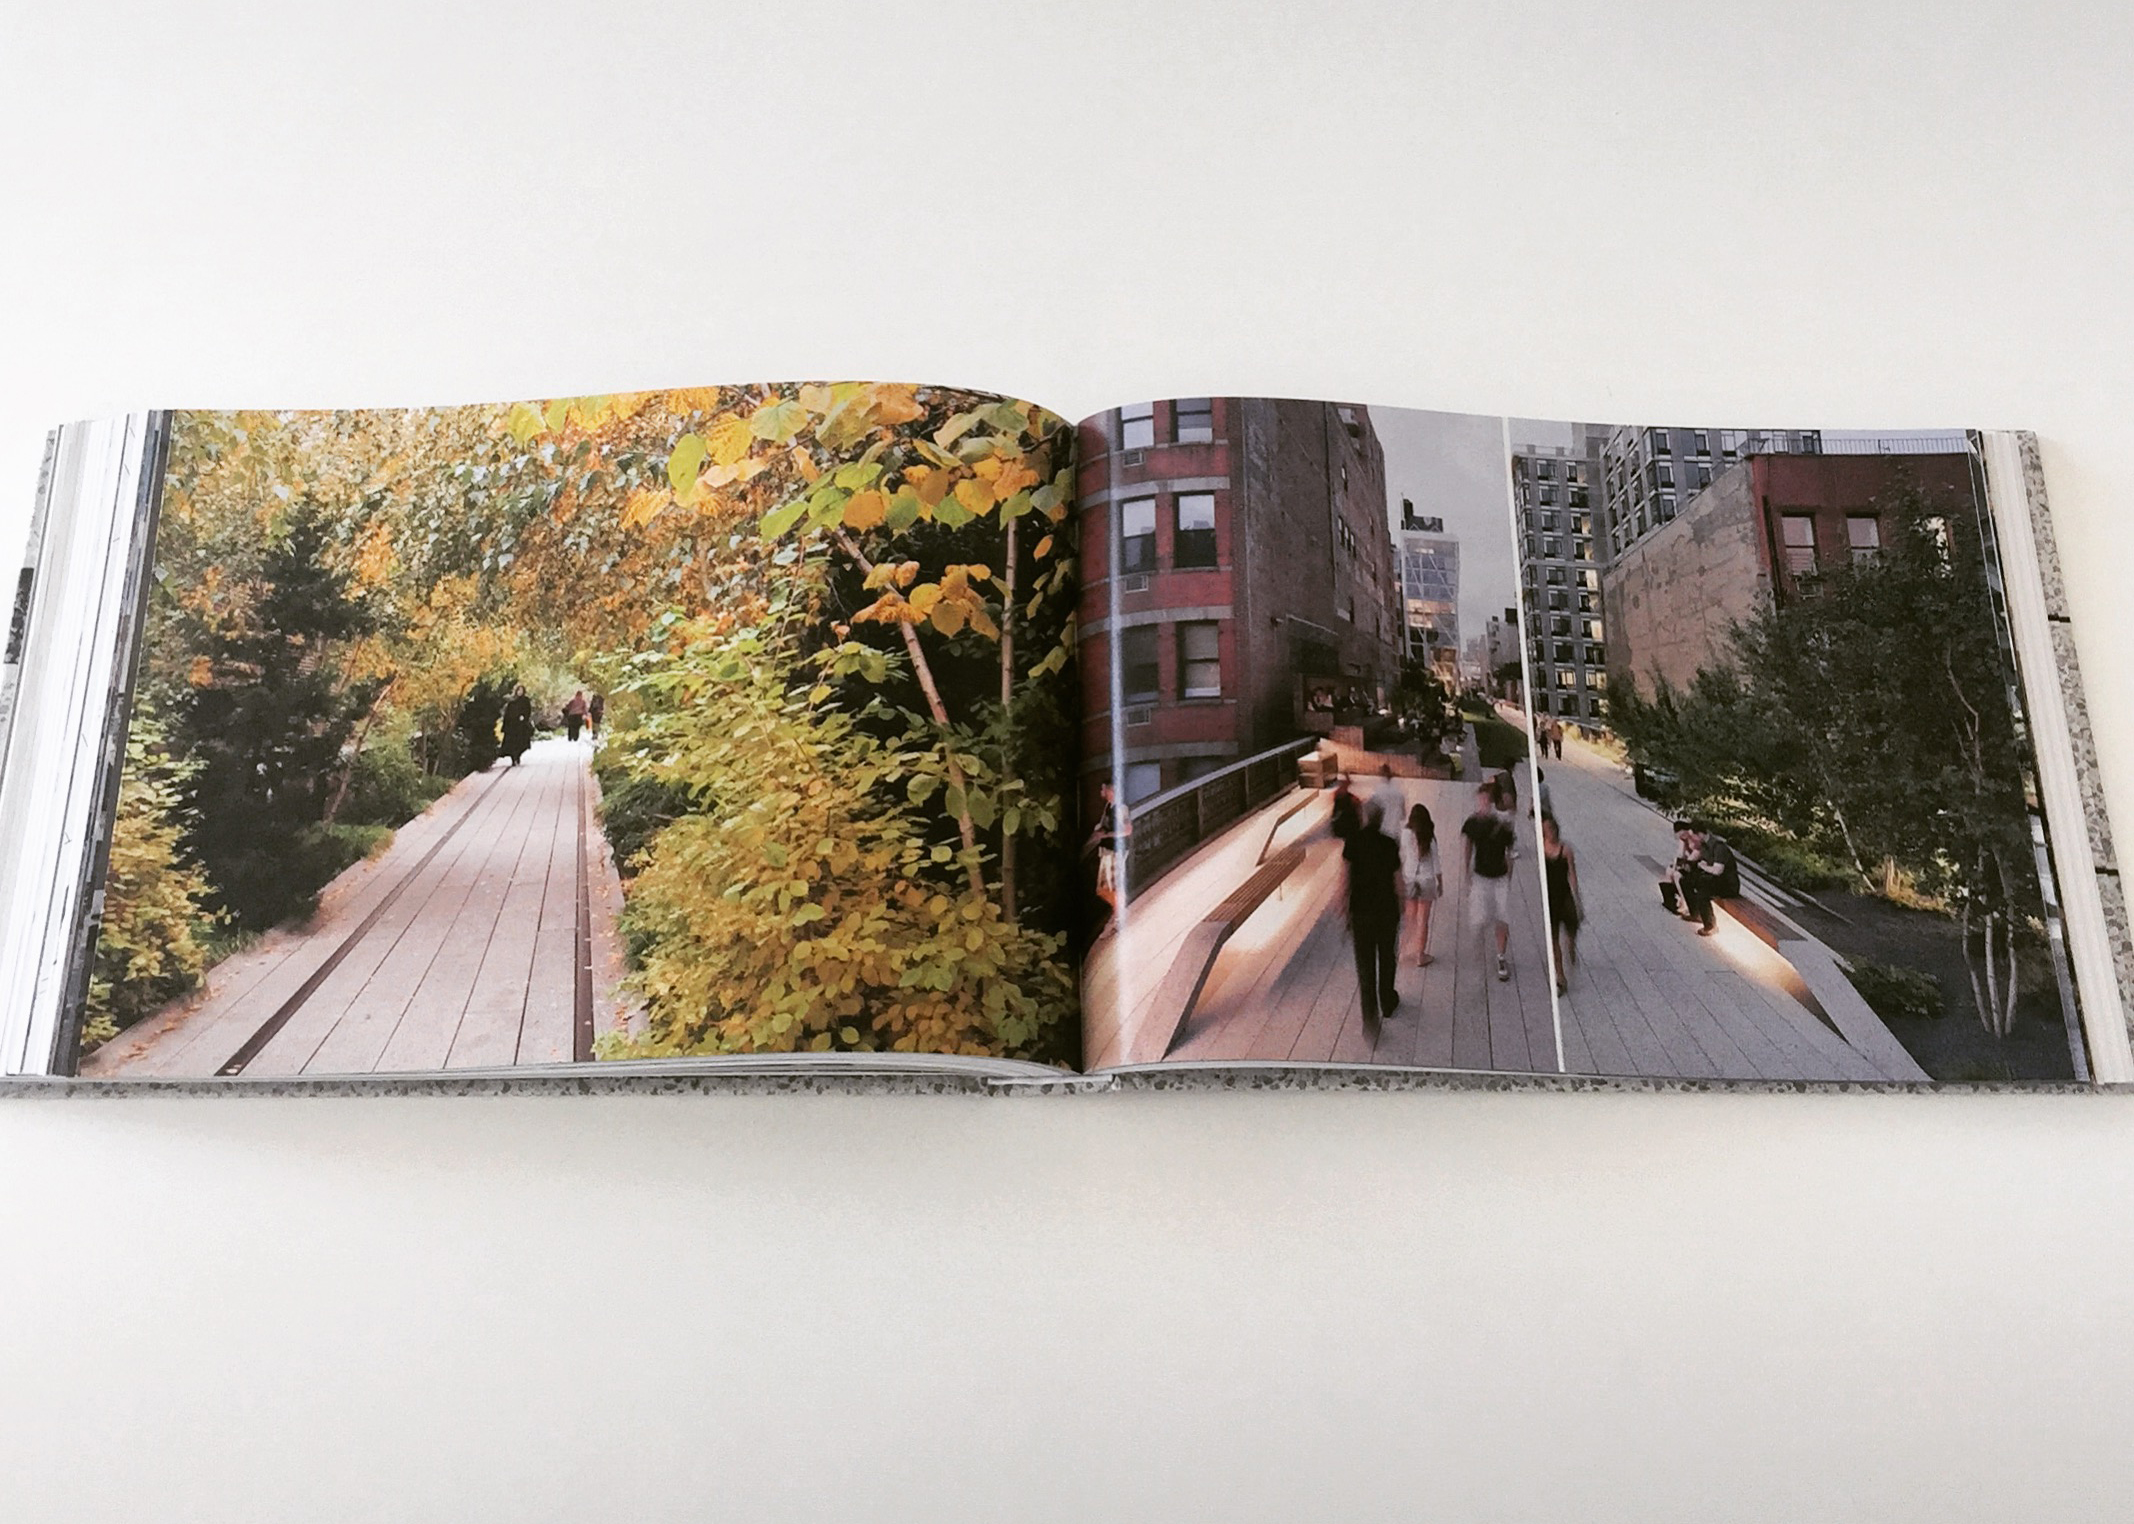 The High Line  by James Corner Field Operations and Diller Scofidio+Renfro. Courtesy of Margaret Jankowsky